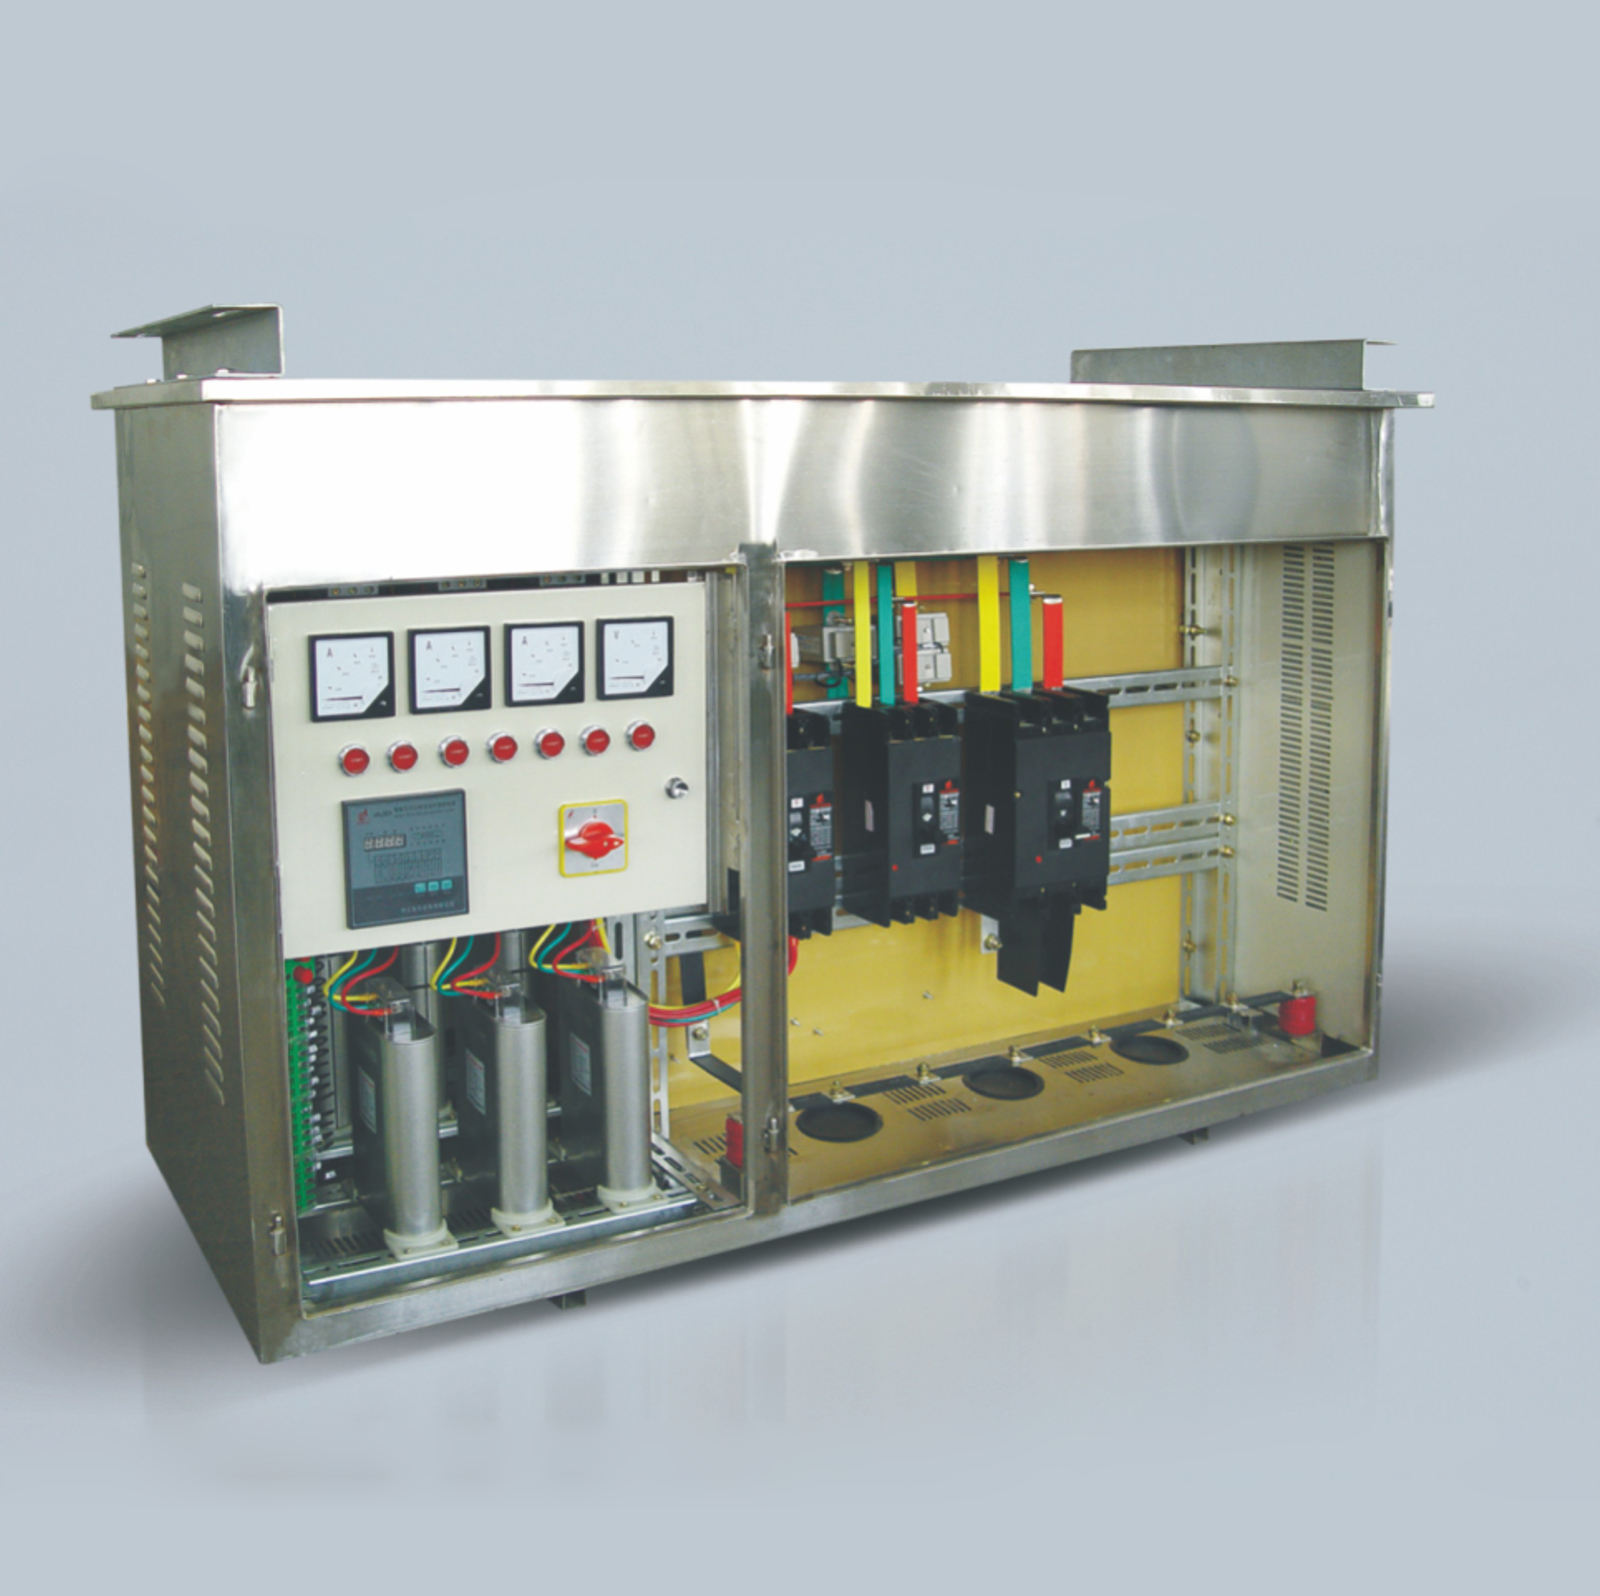 ZM-JP Reactive Power Metering Comprehensive Distribution Cabinet